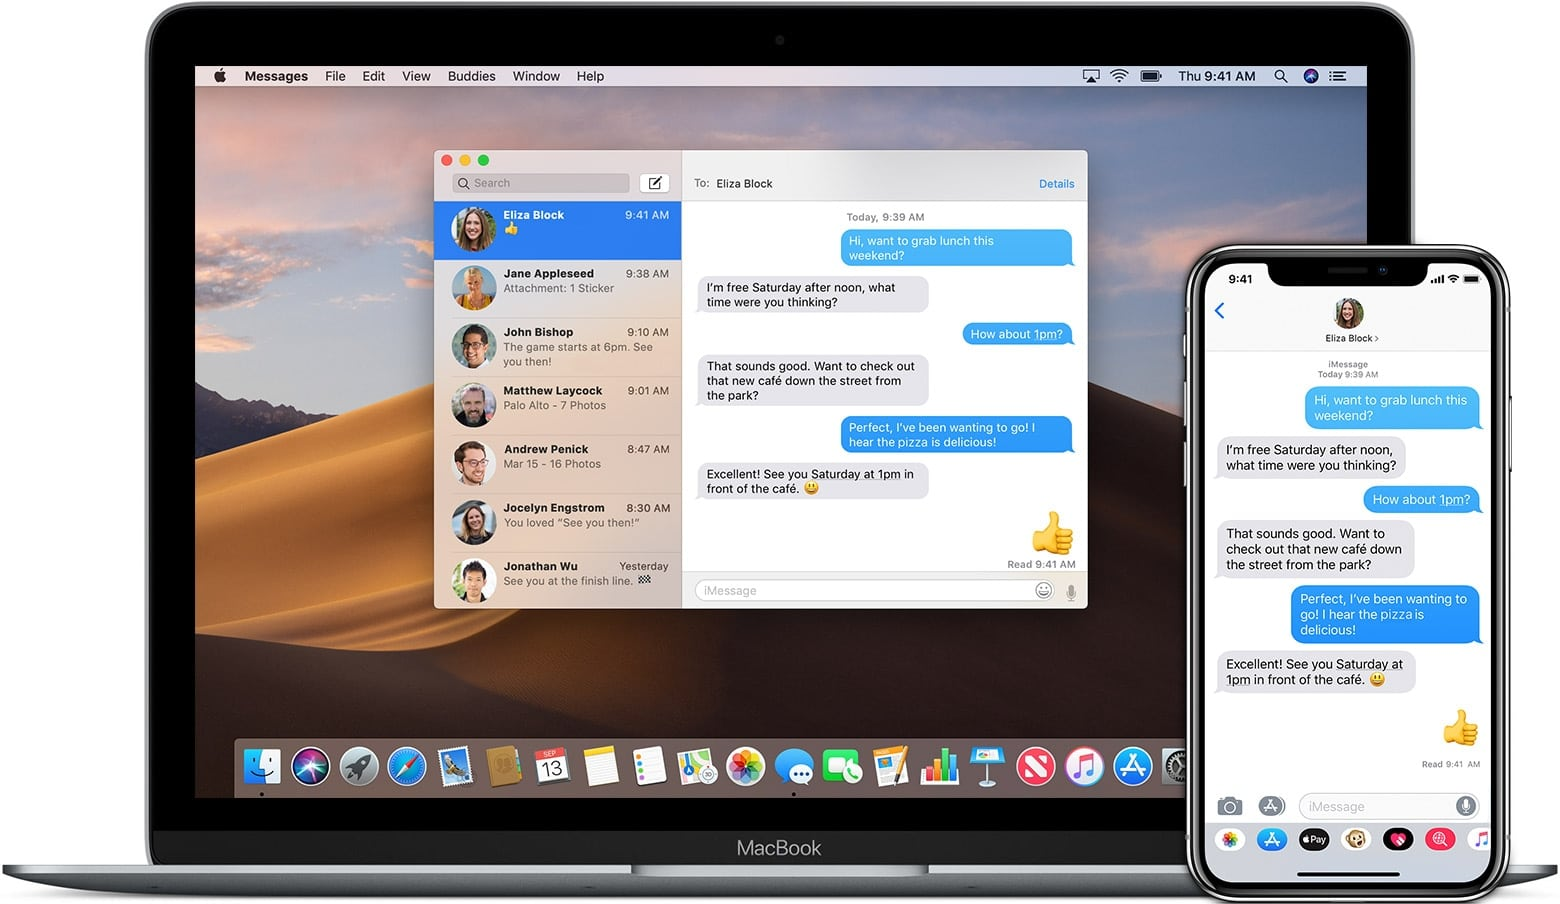 iMessage rodando no Mac e no iPhone